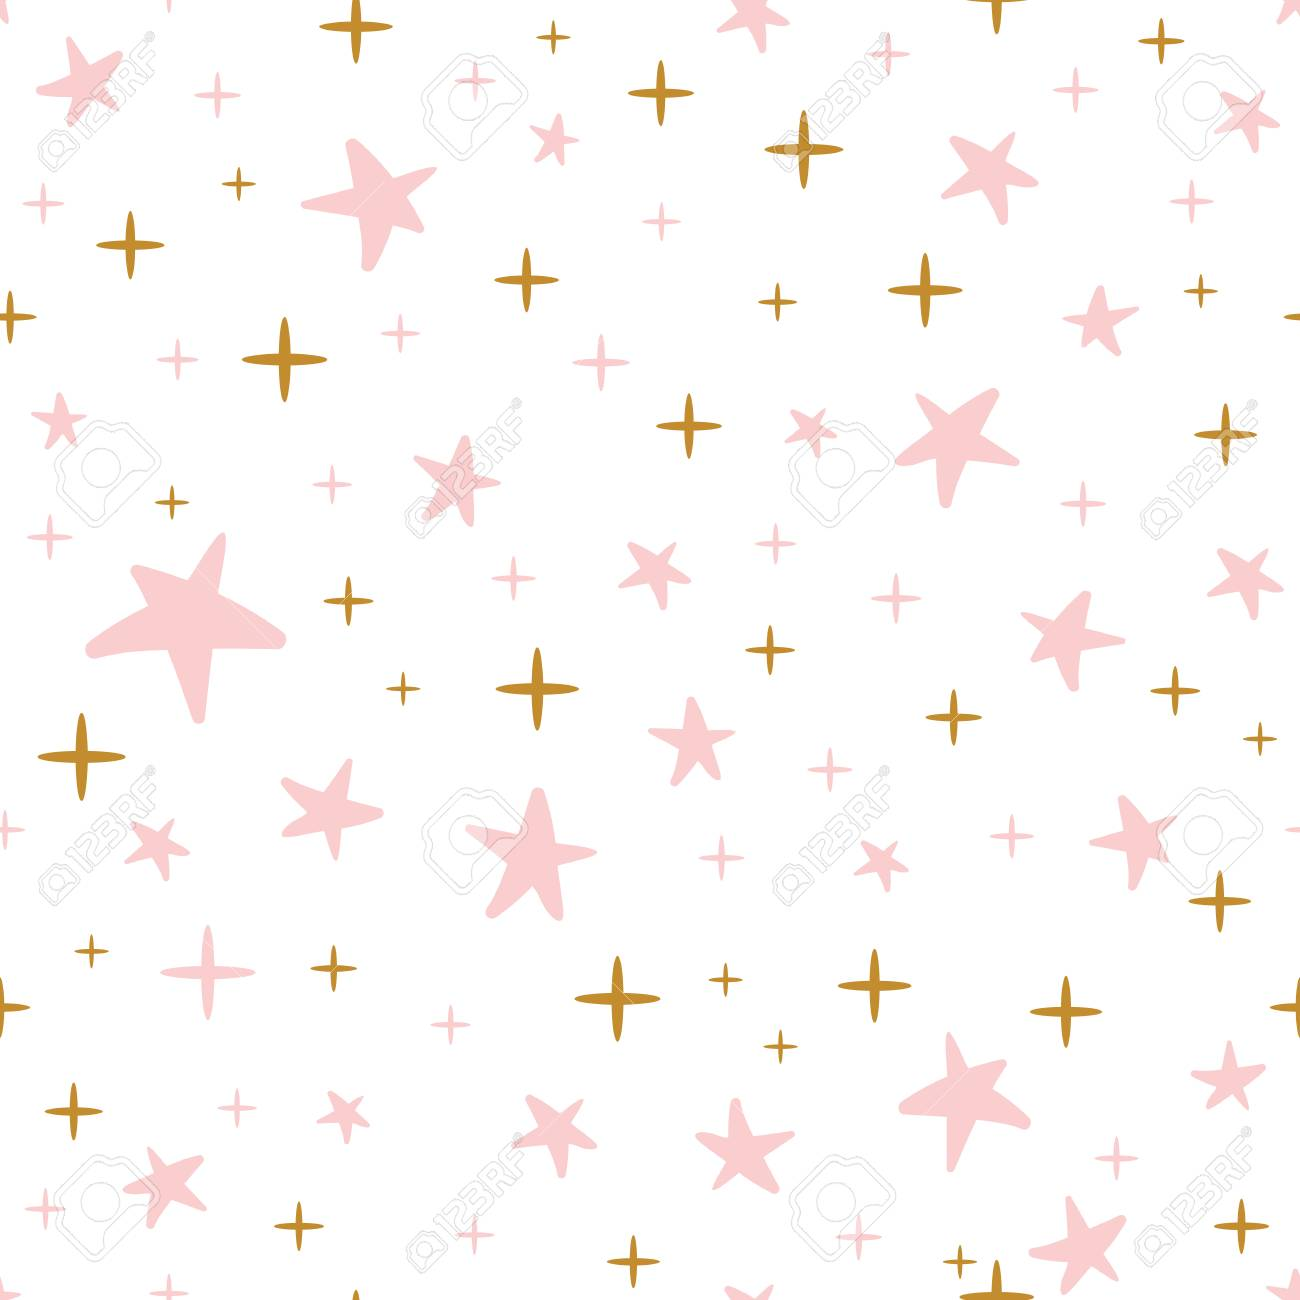 Hand Drawn Seamless Pattern Decorated Gold Pink Stars For Christmas Background Or Baby Shower Wallpaper